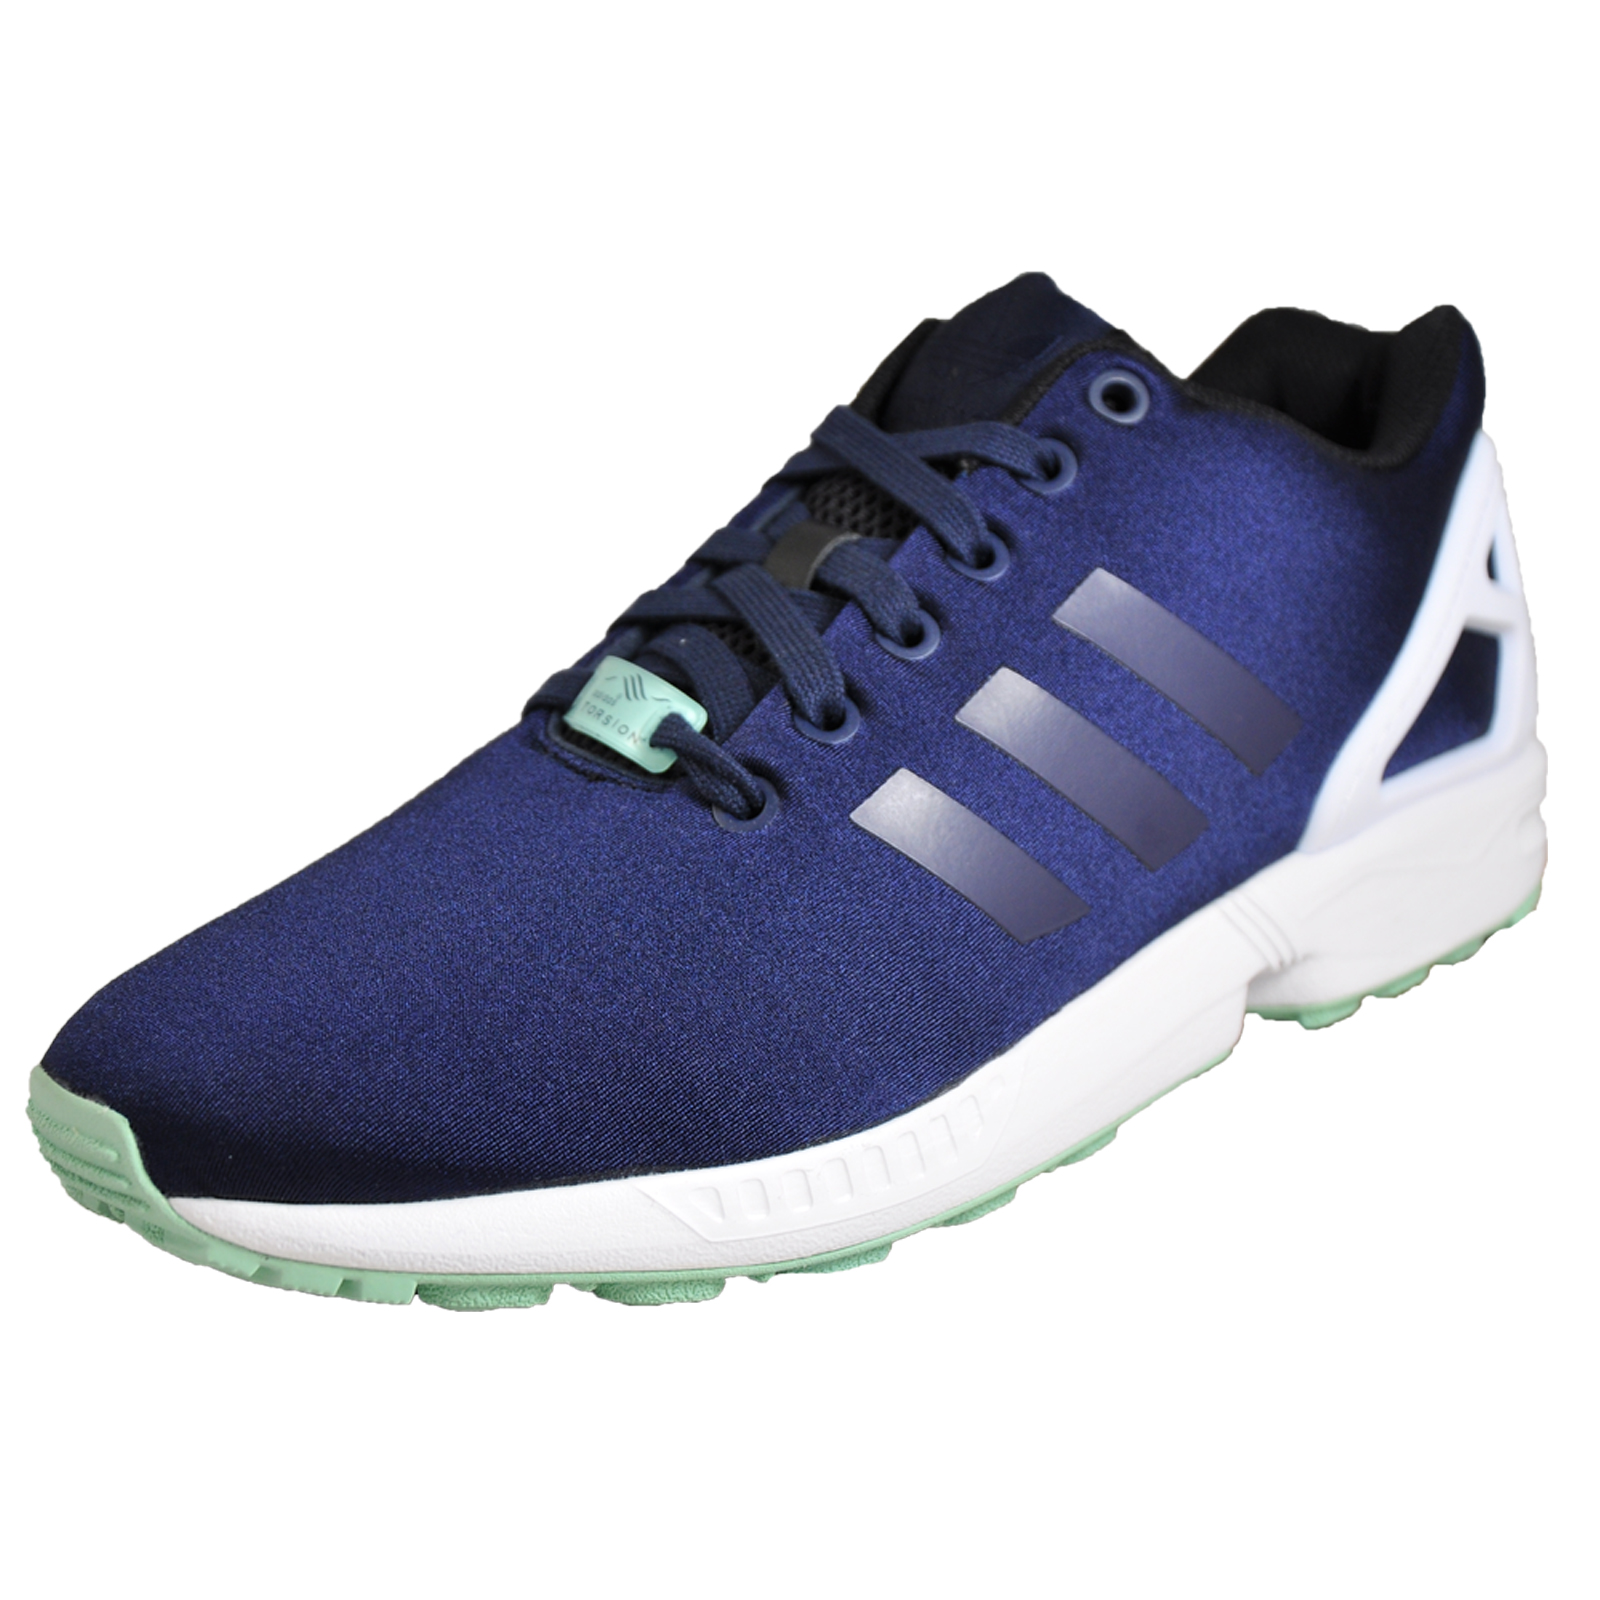 71711d0491c67 Details about Adidas Originals ZX Flux Men s Casual Retro Gym Fashion  Trainers Navy